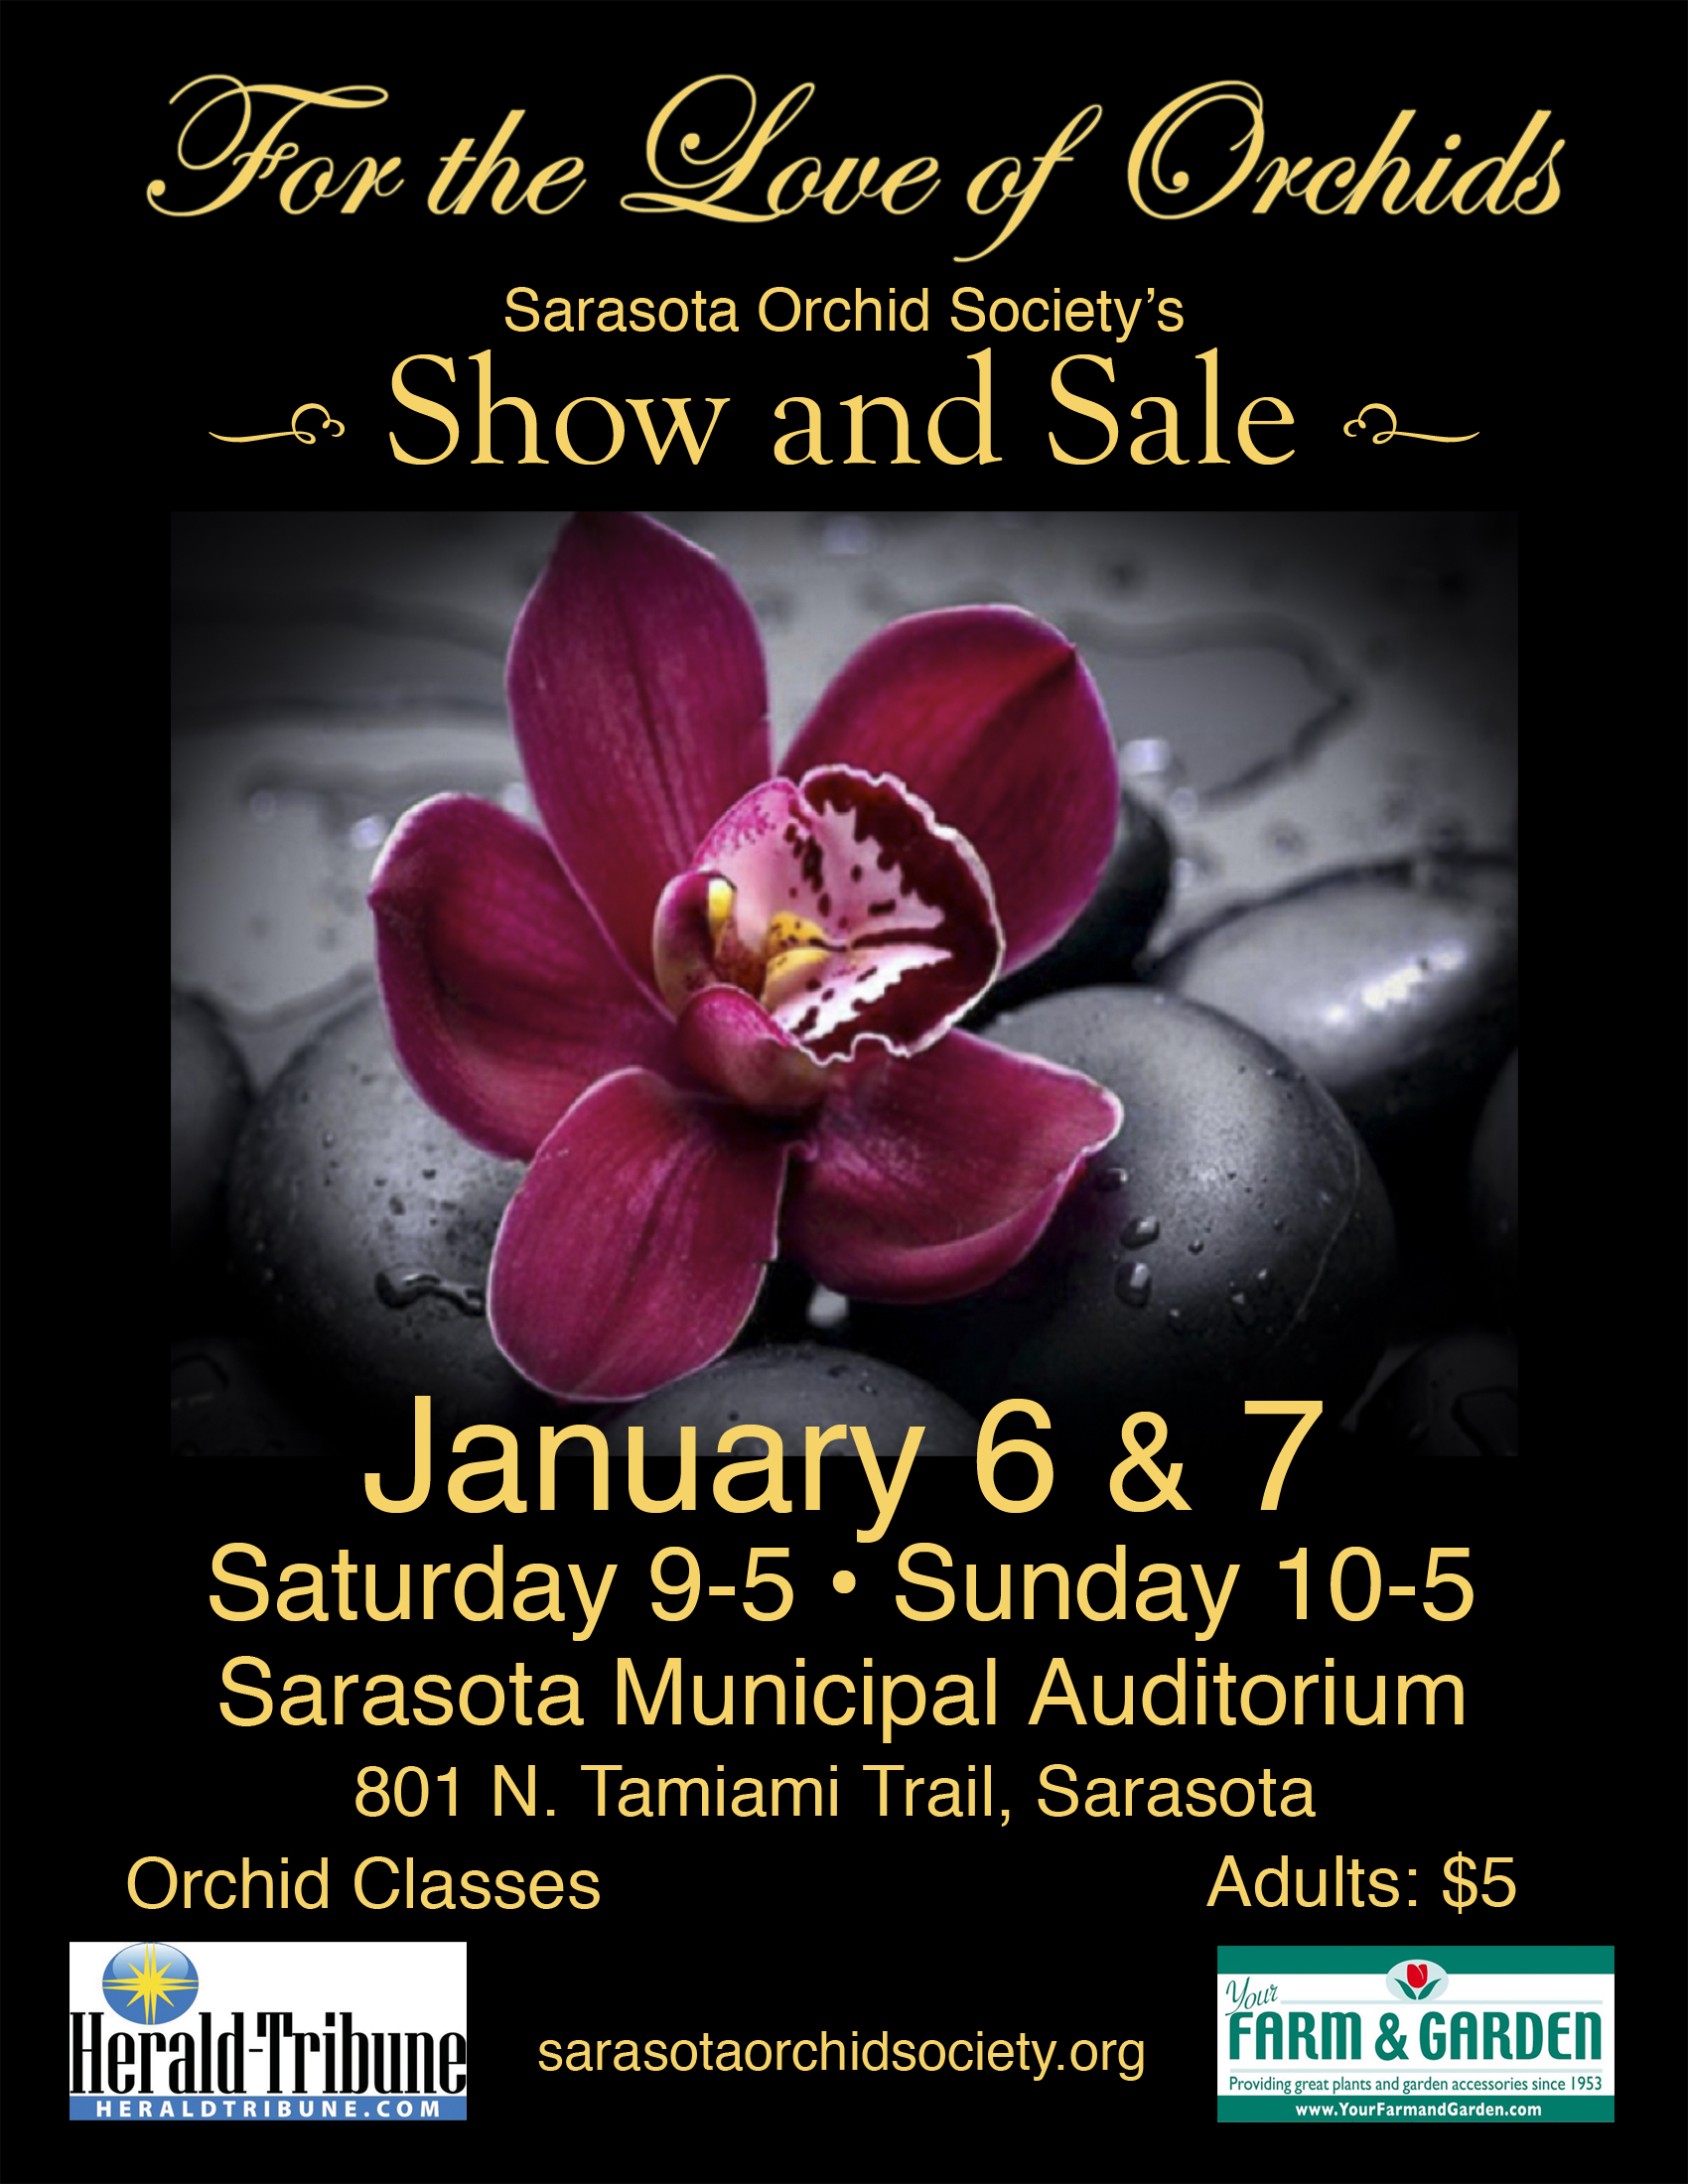 2018 Show and Sale: For the Love of Orchids